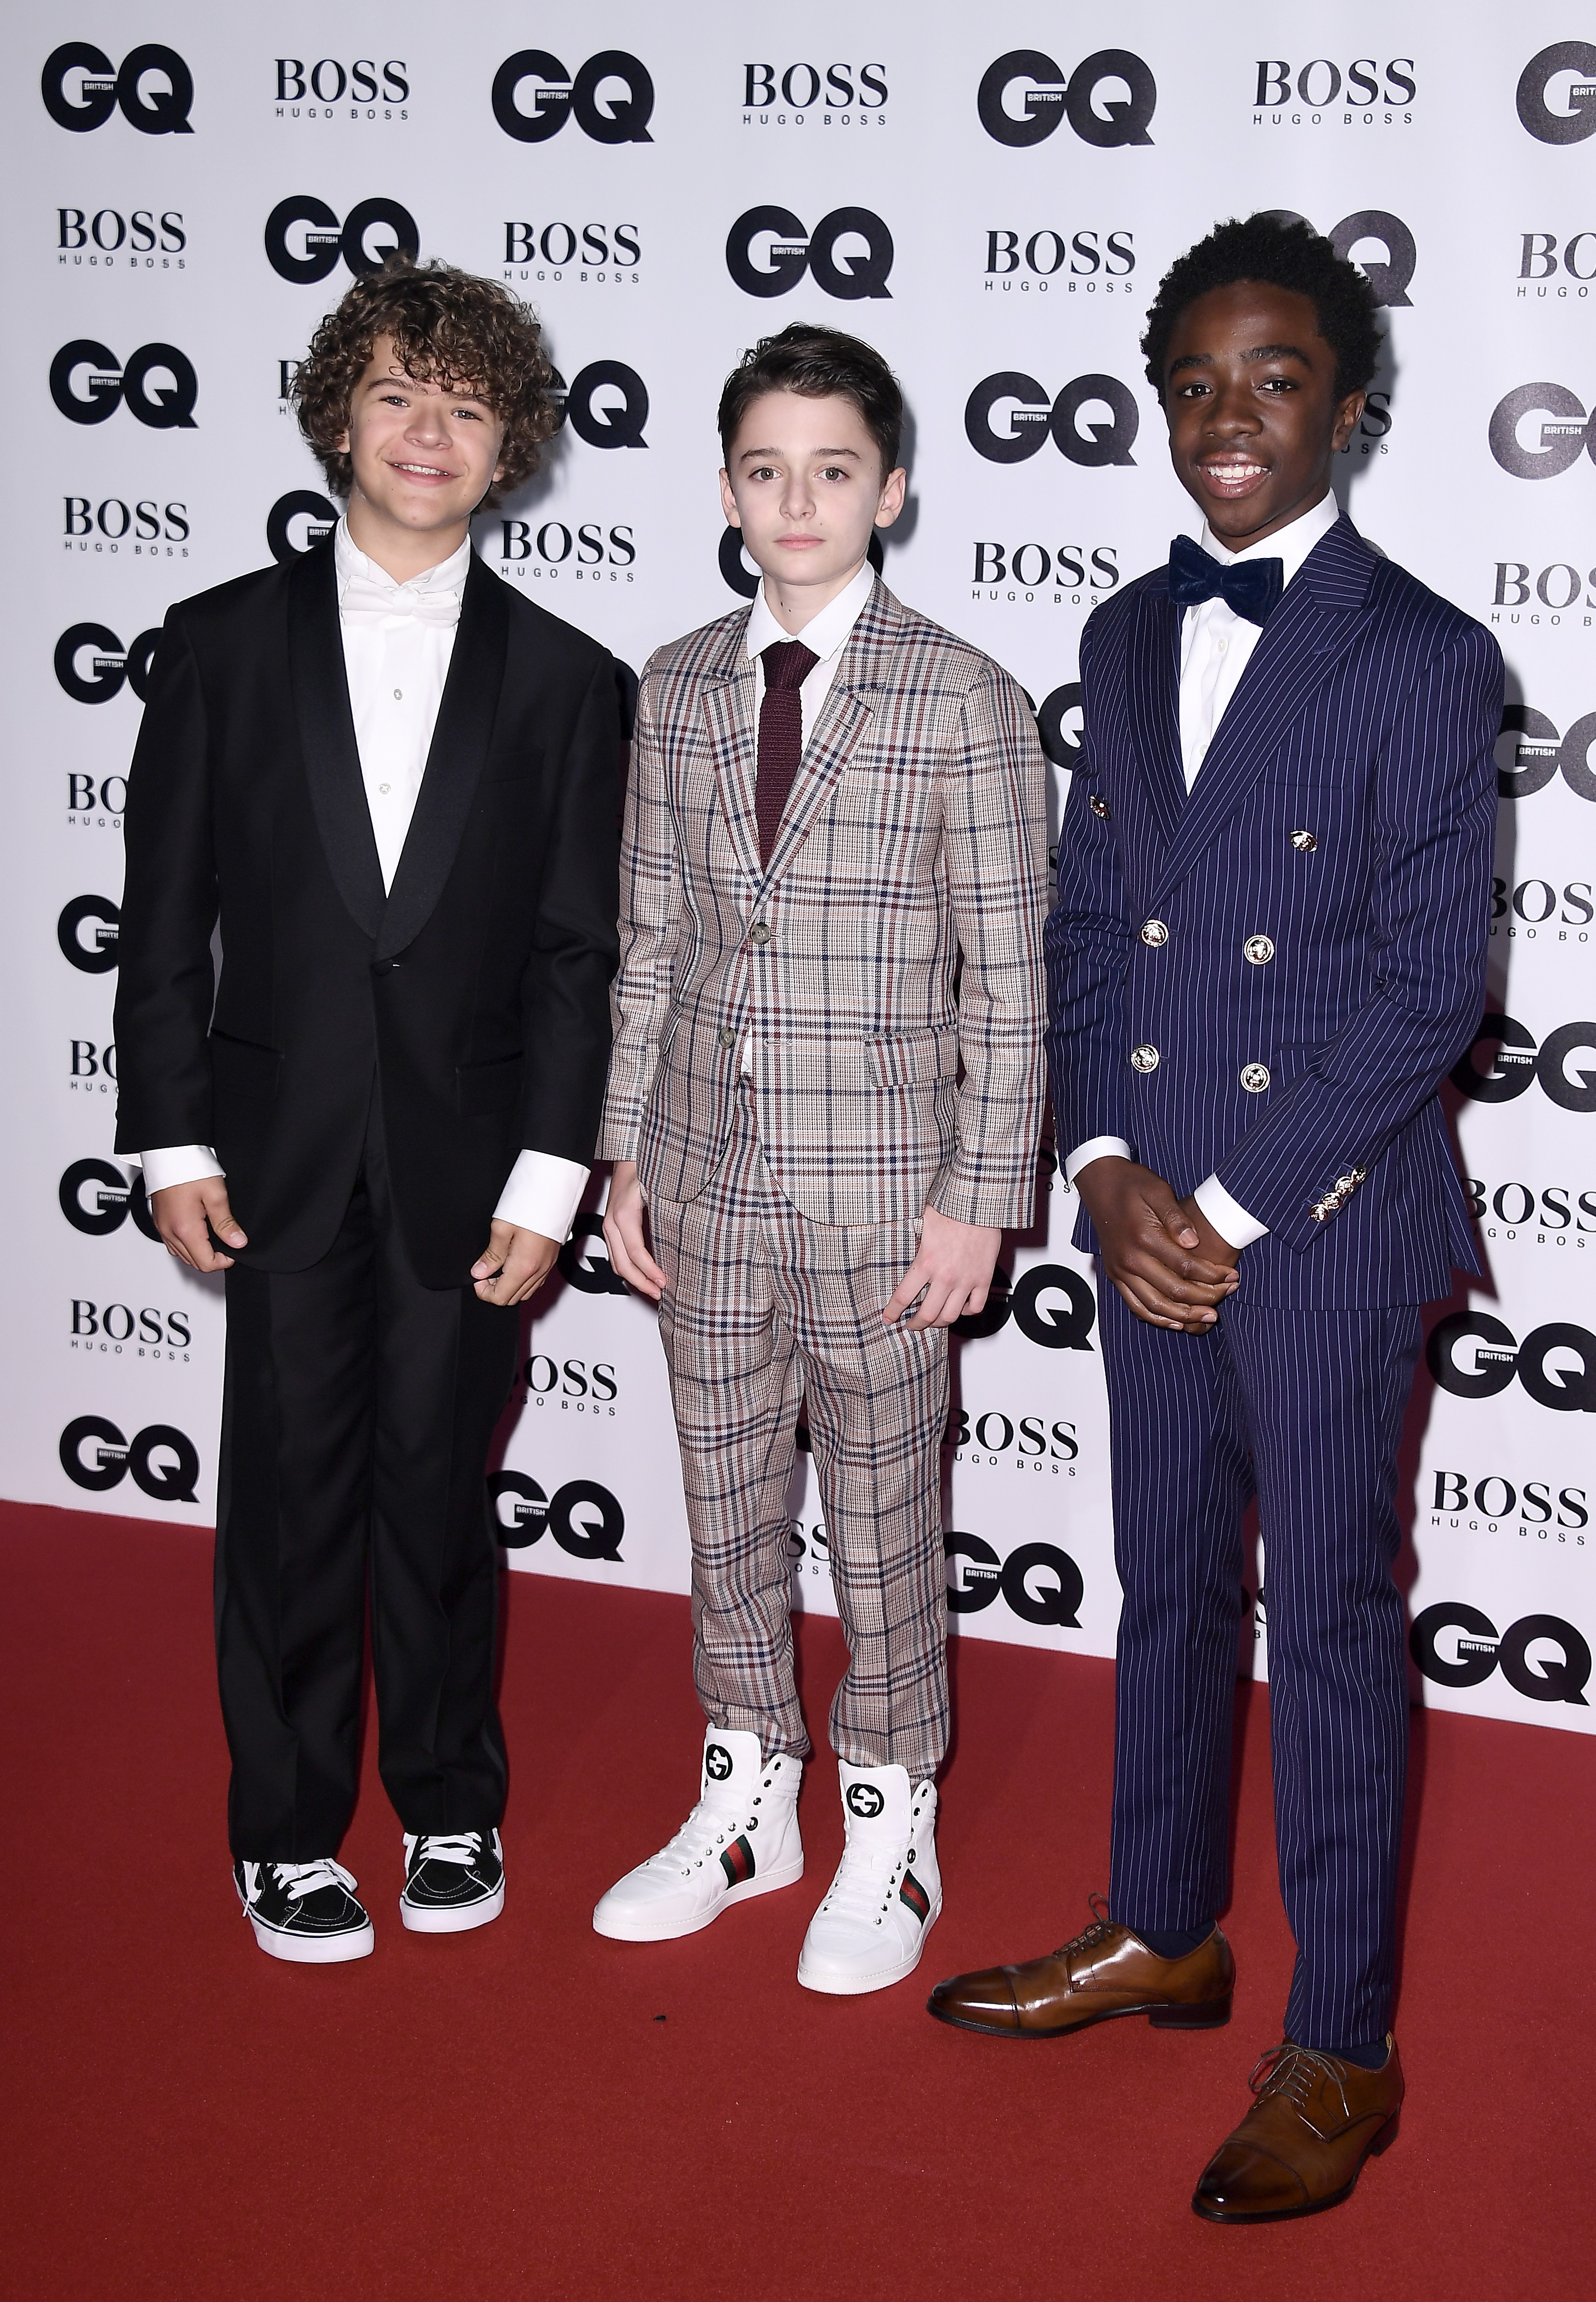 LONDON, ENGLAND - SEPTEMBER 05:  Gaten Matarazzo, Noah Schnapp and Caleb McLaughlin attend the GQ Men Of The Year Awards at the Tate Modern on September 5, 2017 in London, England.  (Photo by Gareth Cattermole/Getty Images)